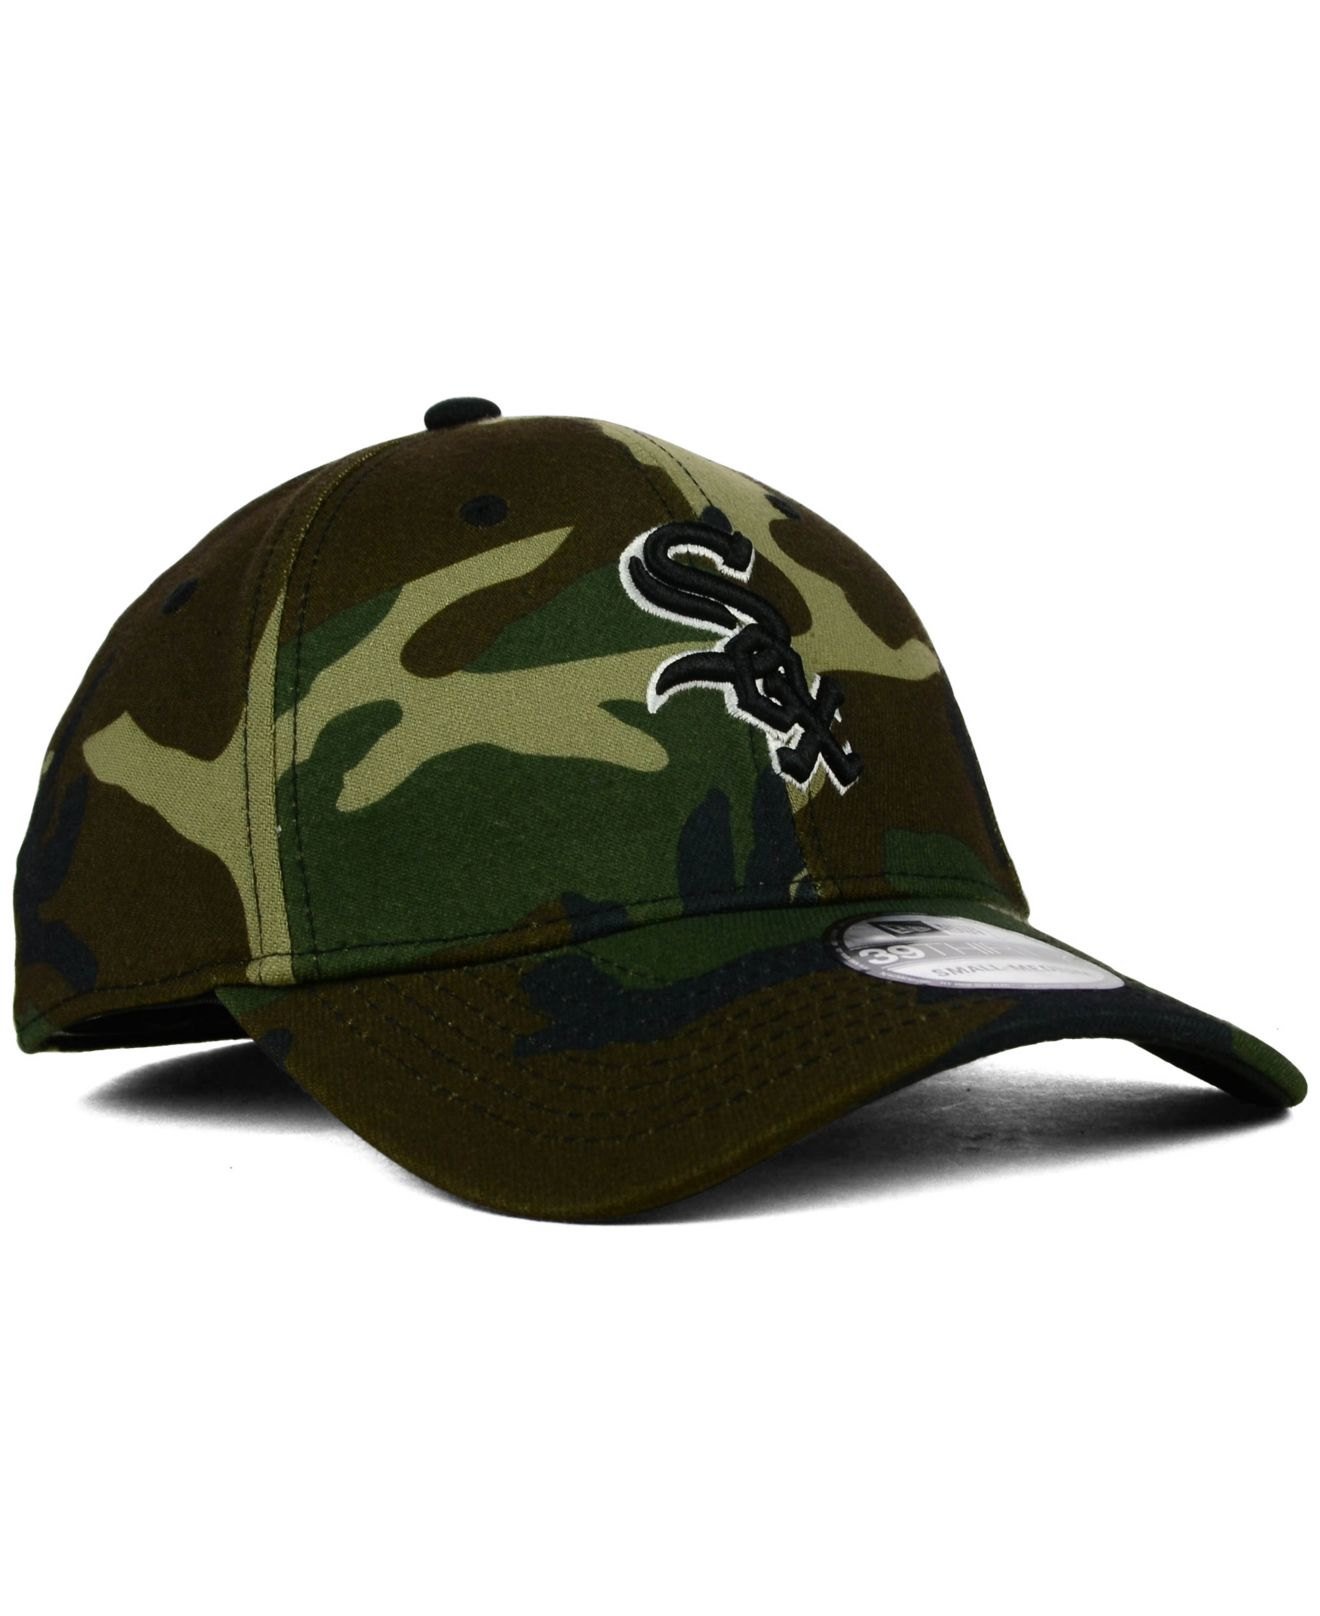 Lyst - KTZ Chicago White Sox Camo Classic 39thirty Cap in Black for Men 41a27993d95